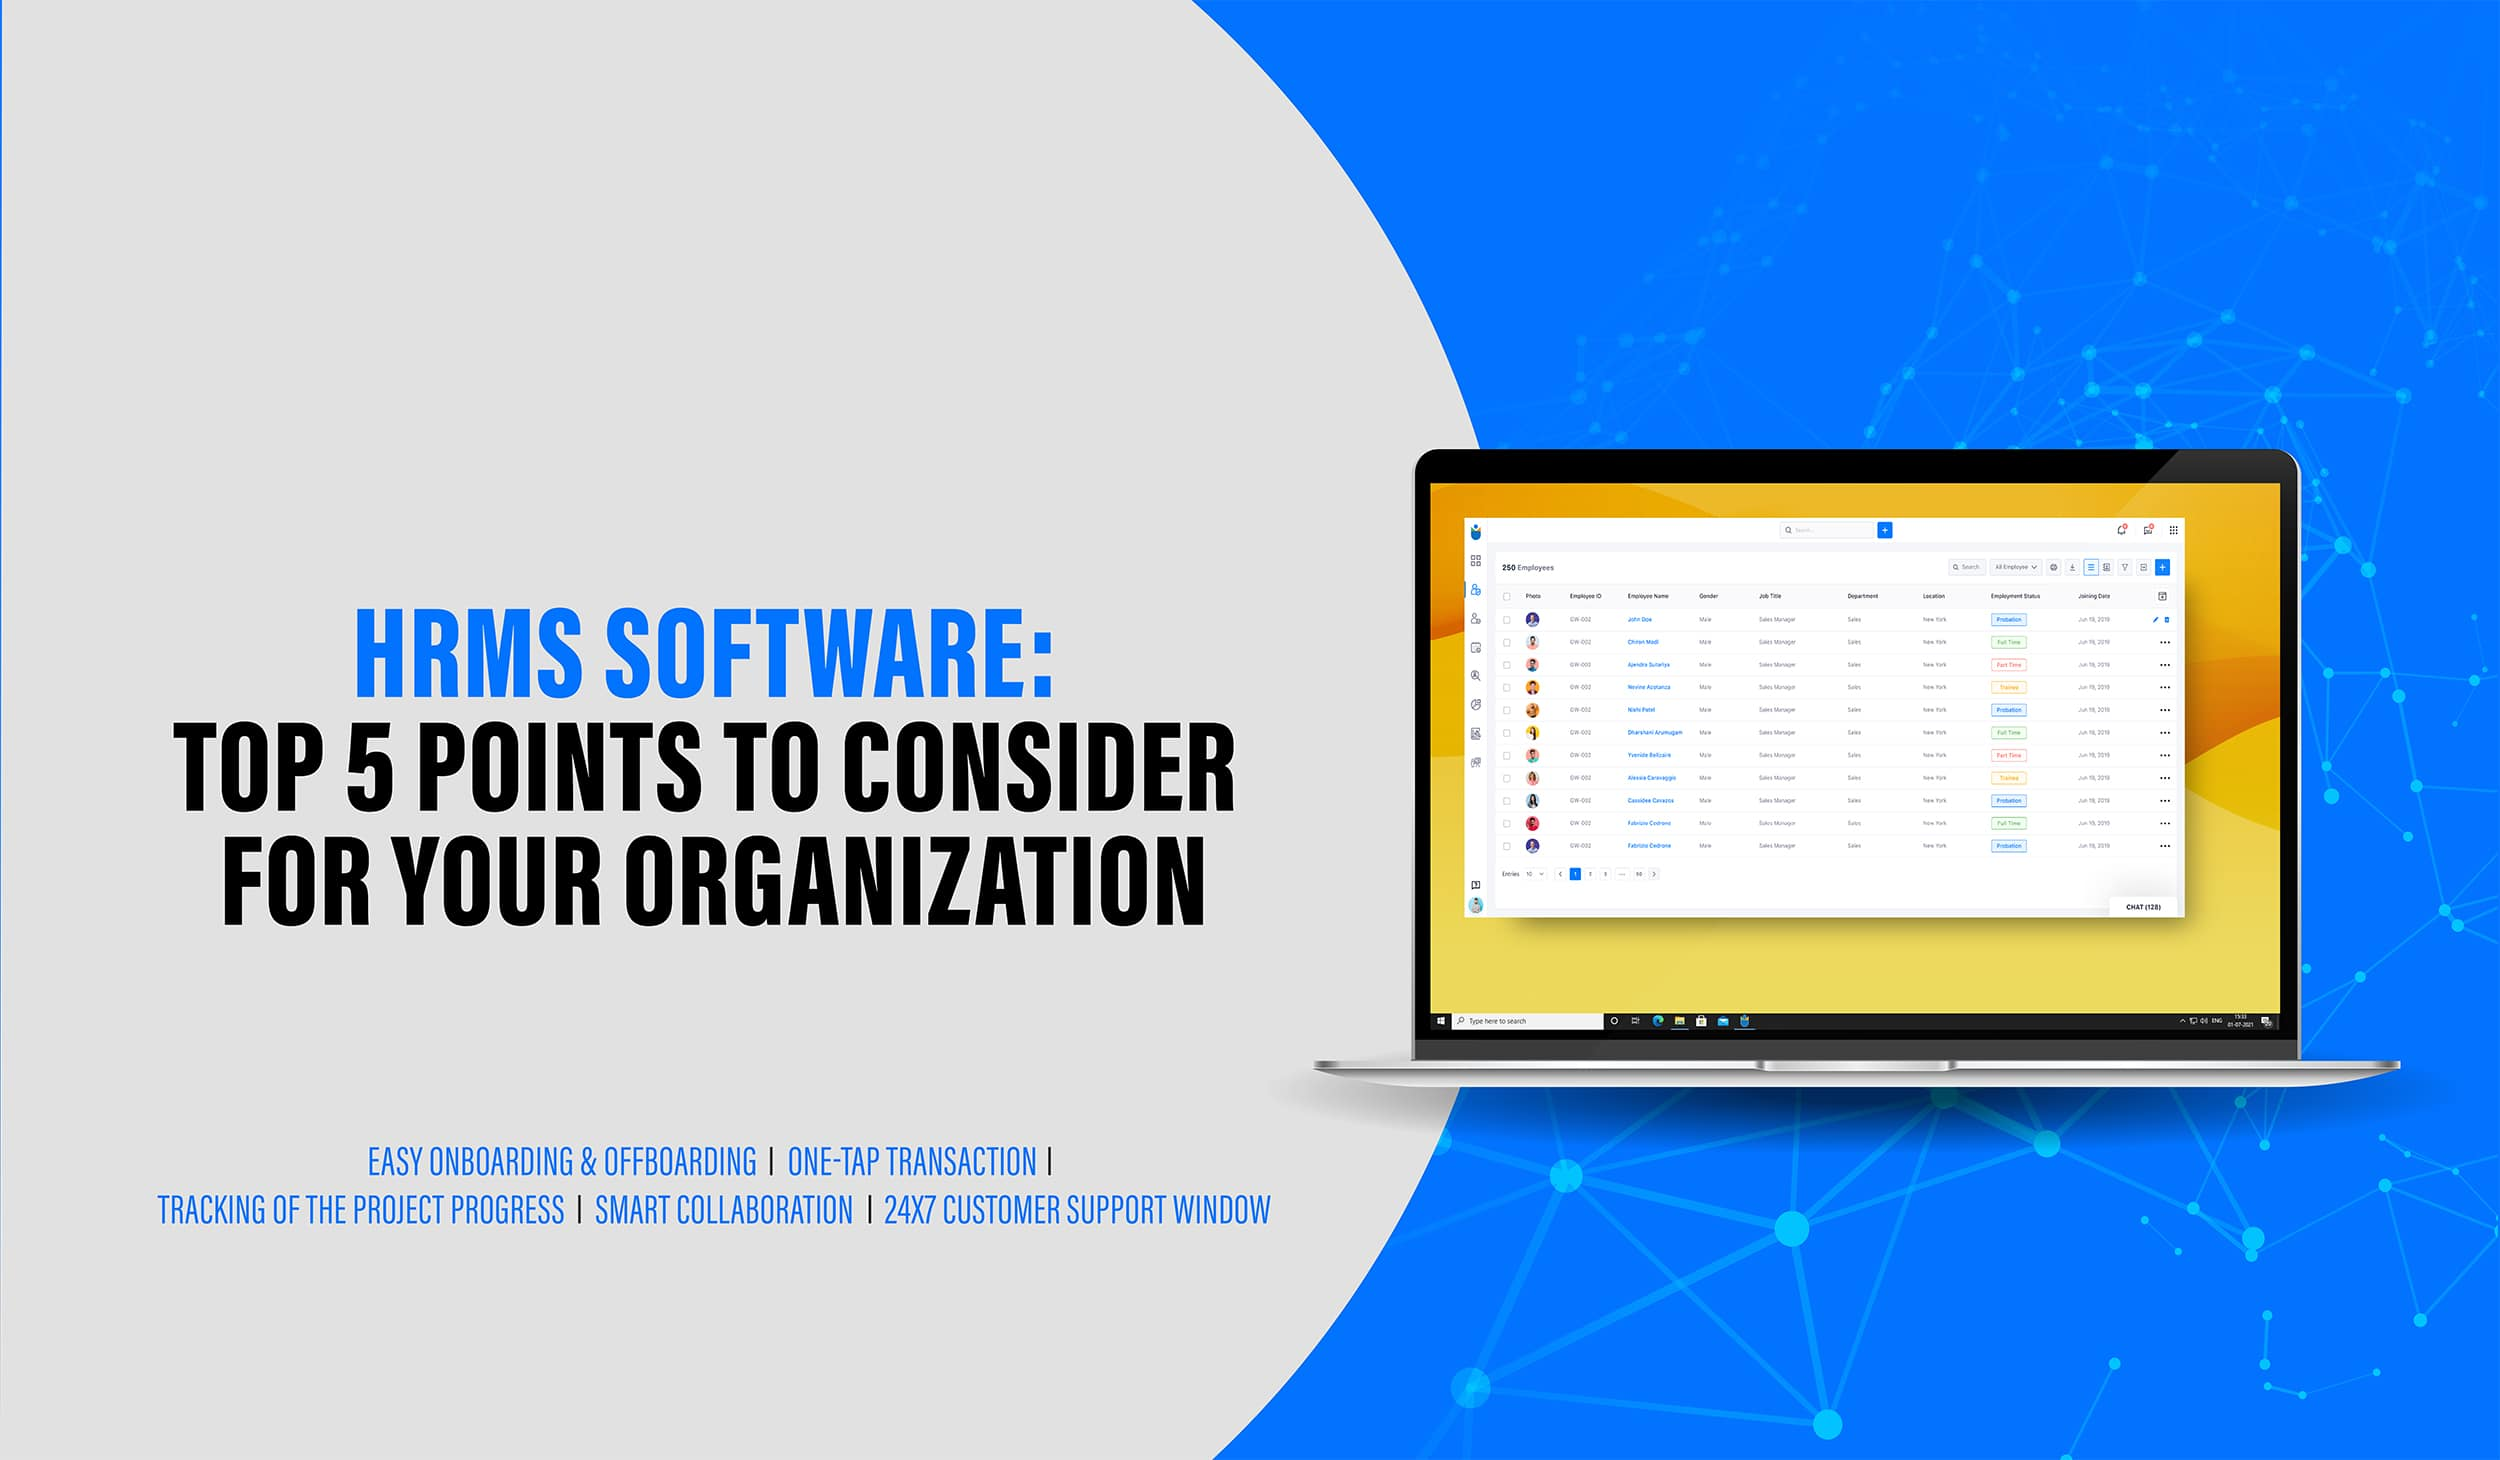 Organizations supportive HRMS software